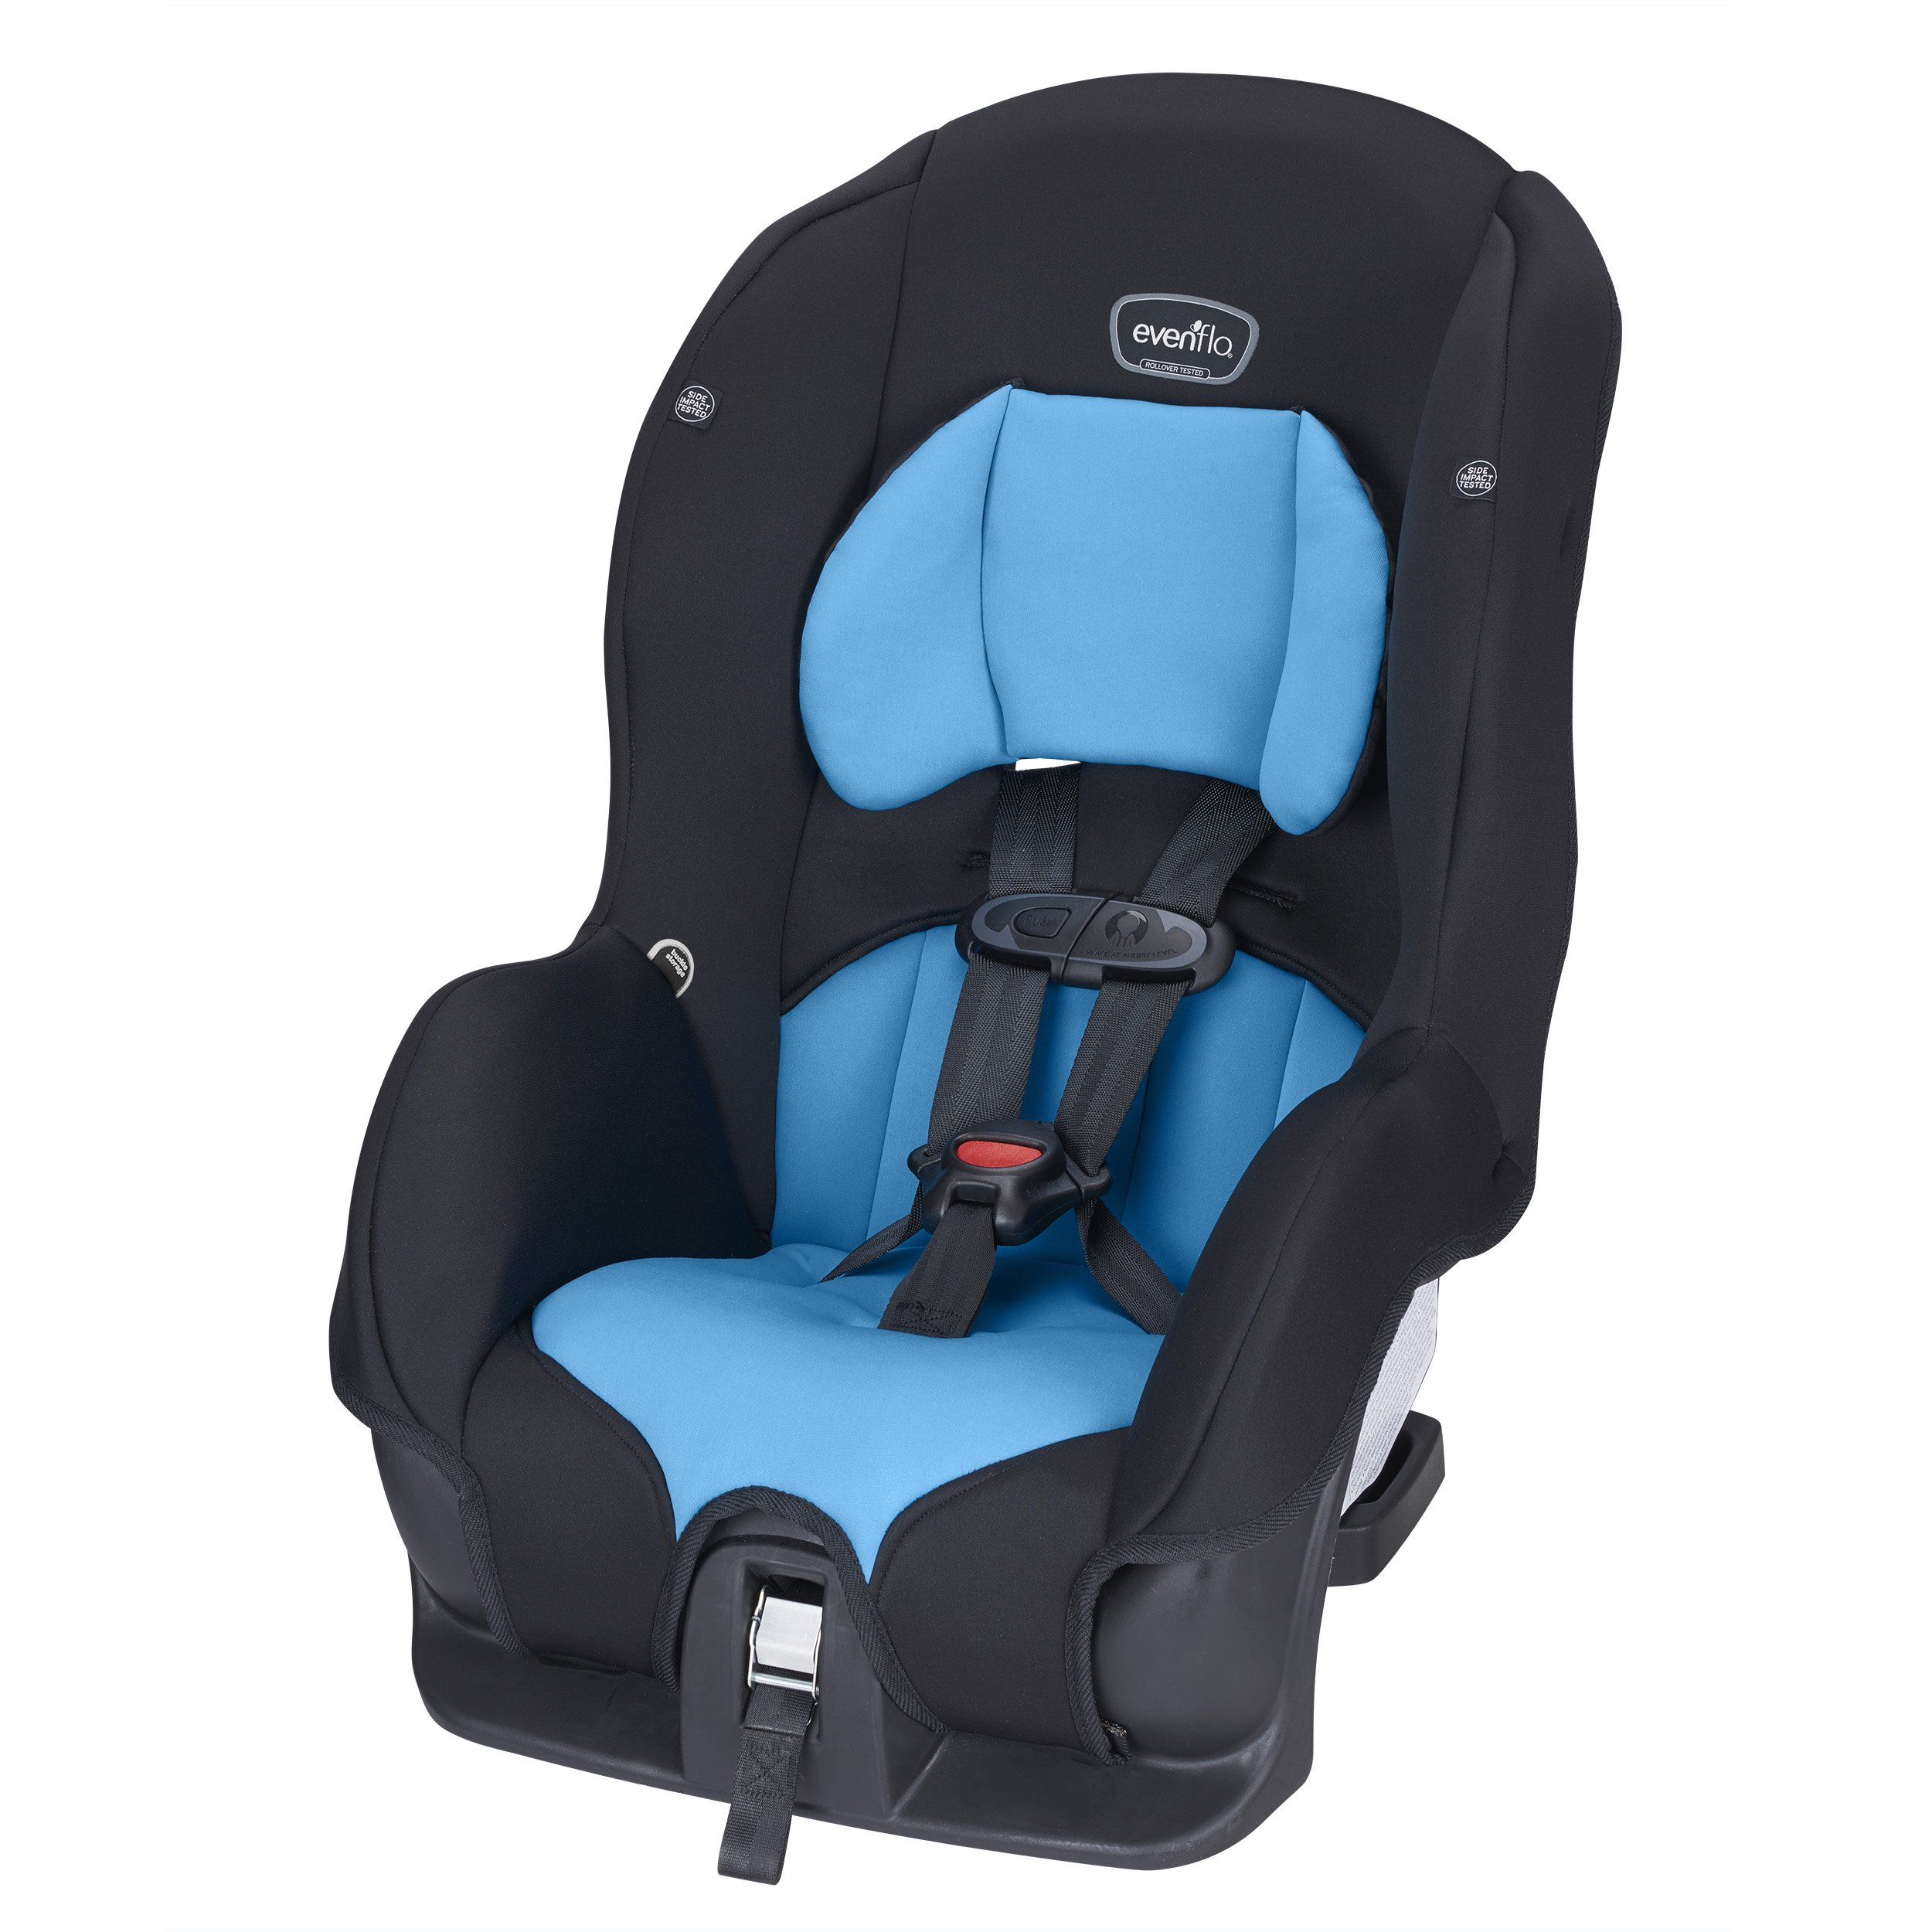 cosco pronto booster car seat for children adjustable headrest integrated cup. Black Bedroom Furniture Sets. Home Design Ideas